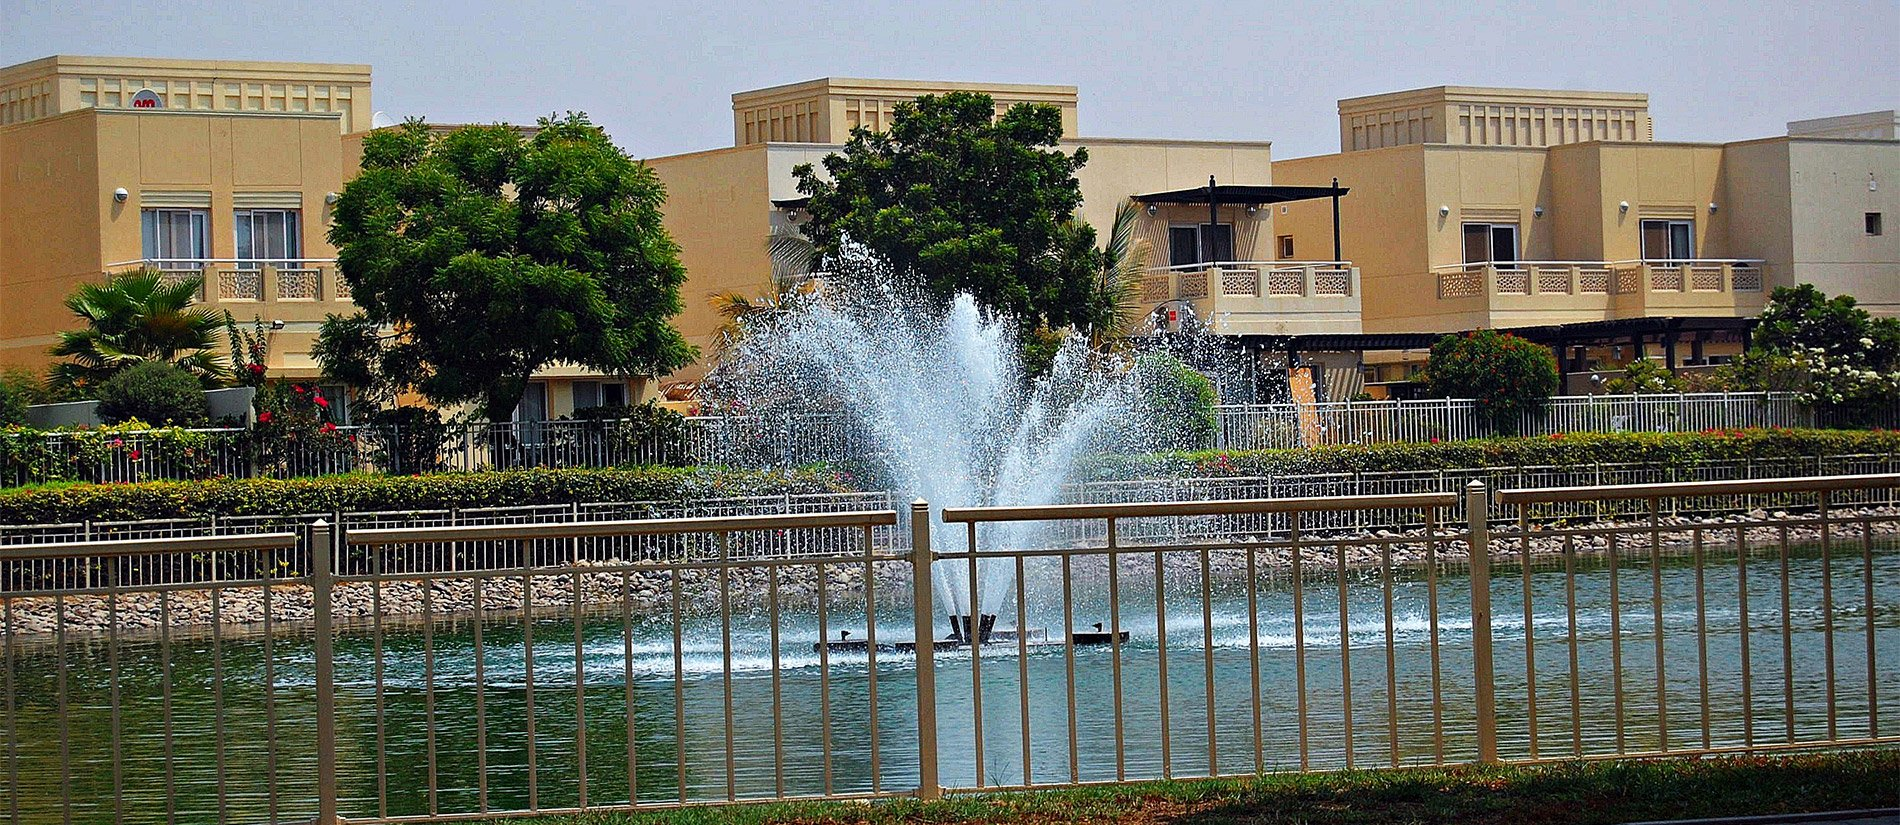 Meadows Dubai